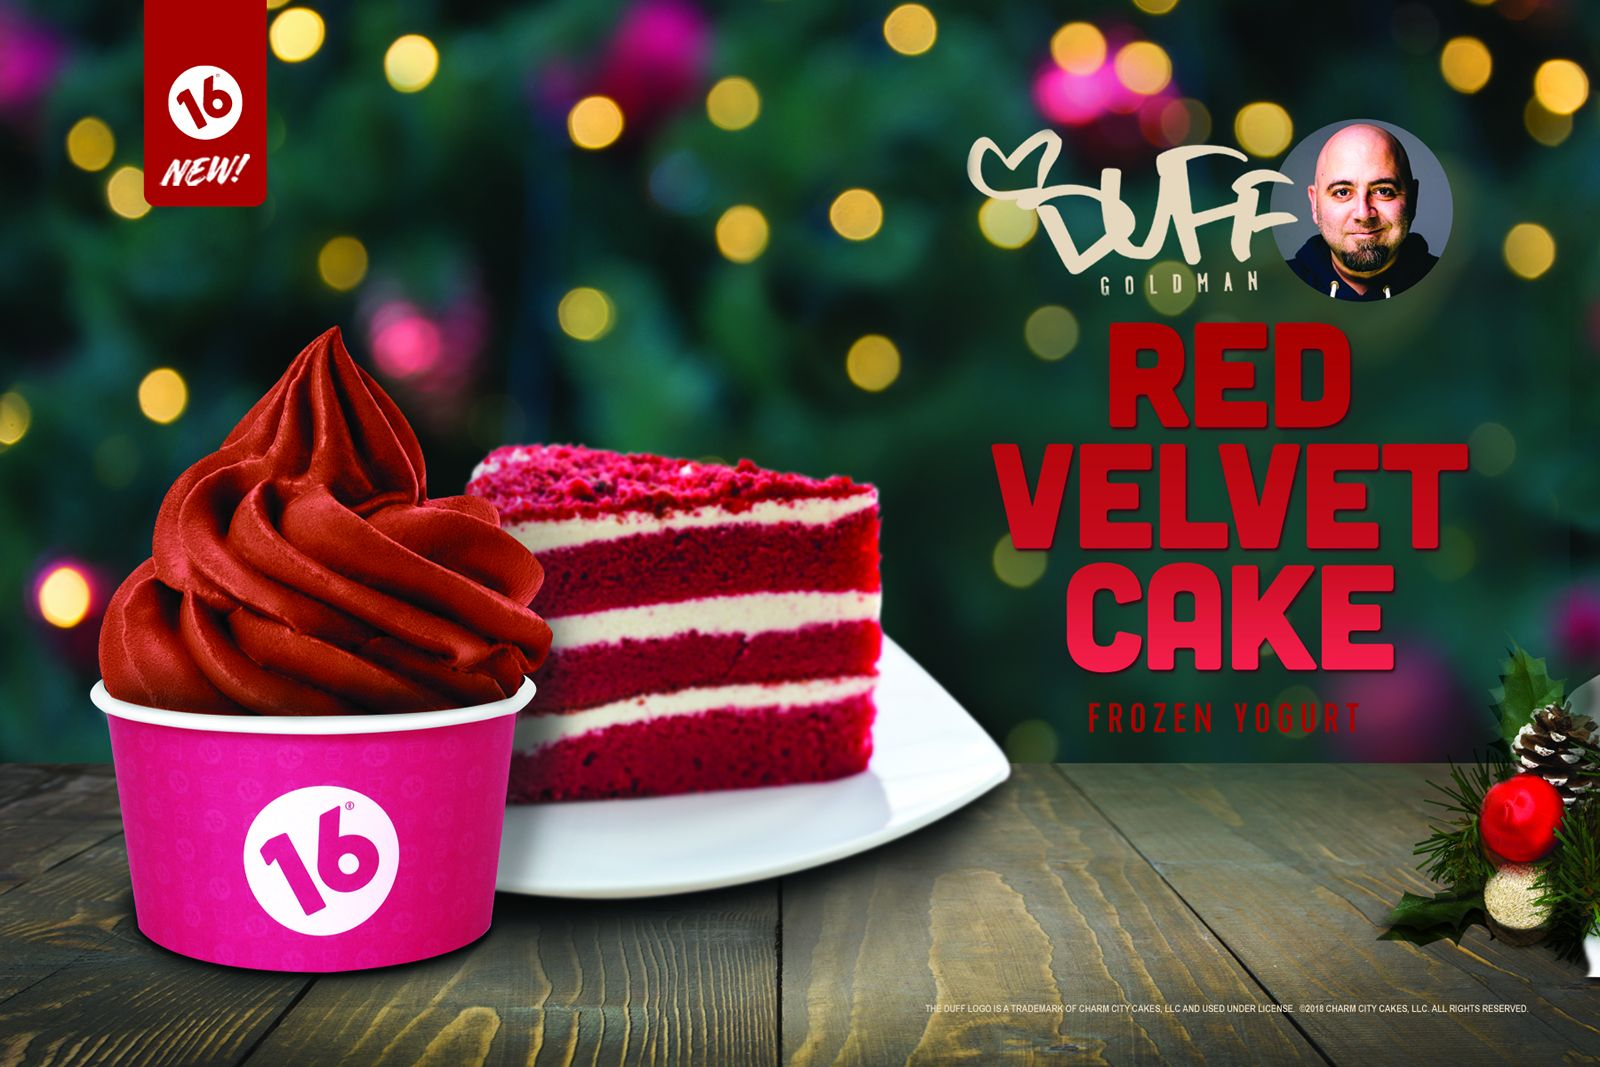 16 Handles Launches New Flavor: Duff's Red Velvet Cake